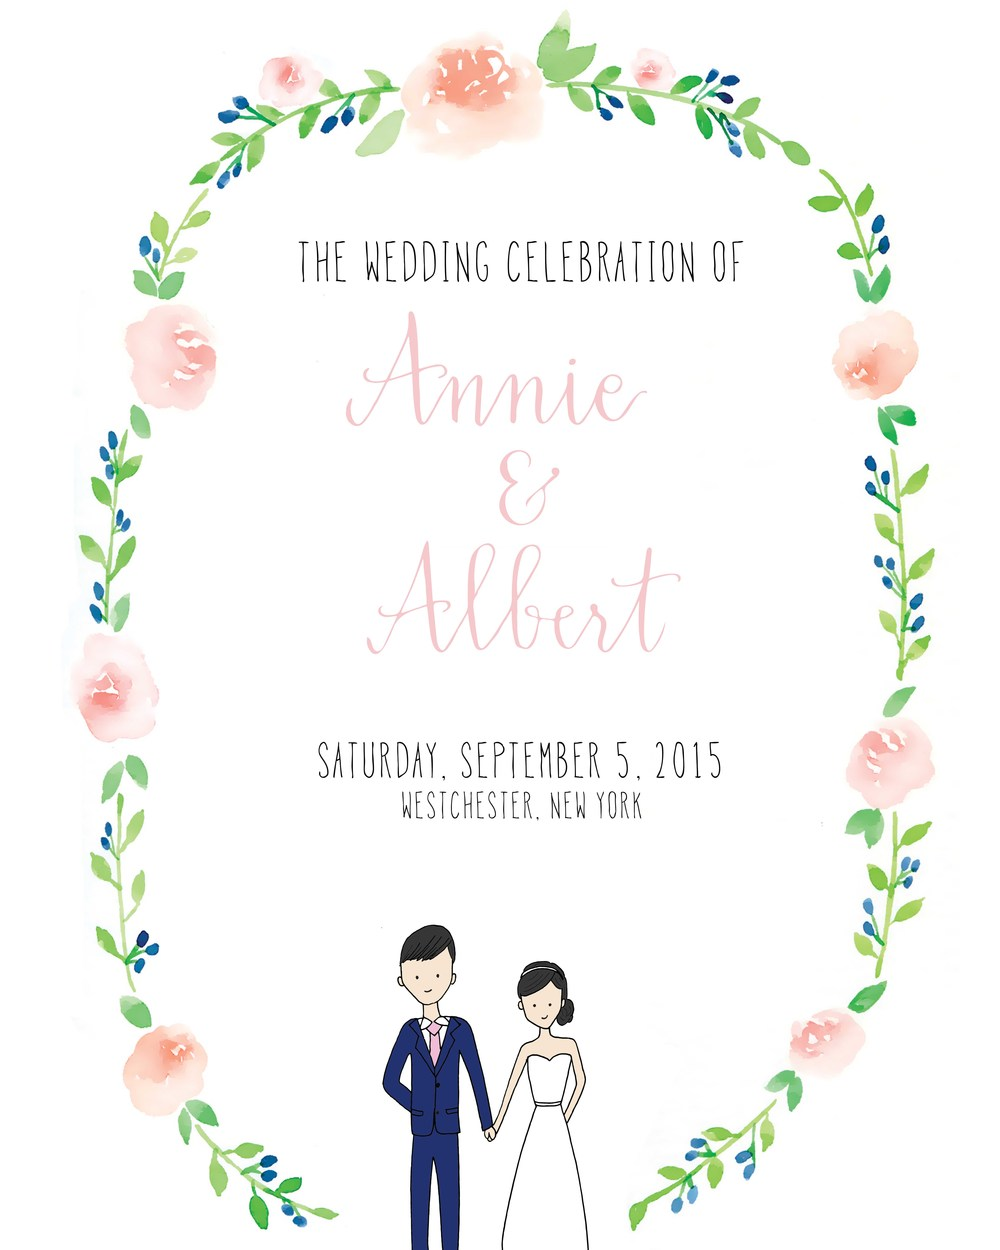 annie and albert colored with florals.jpg